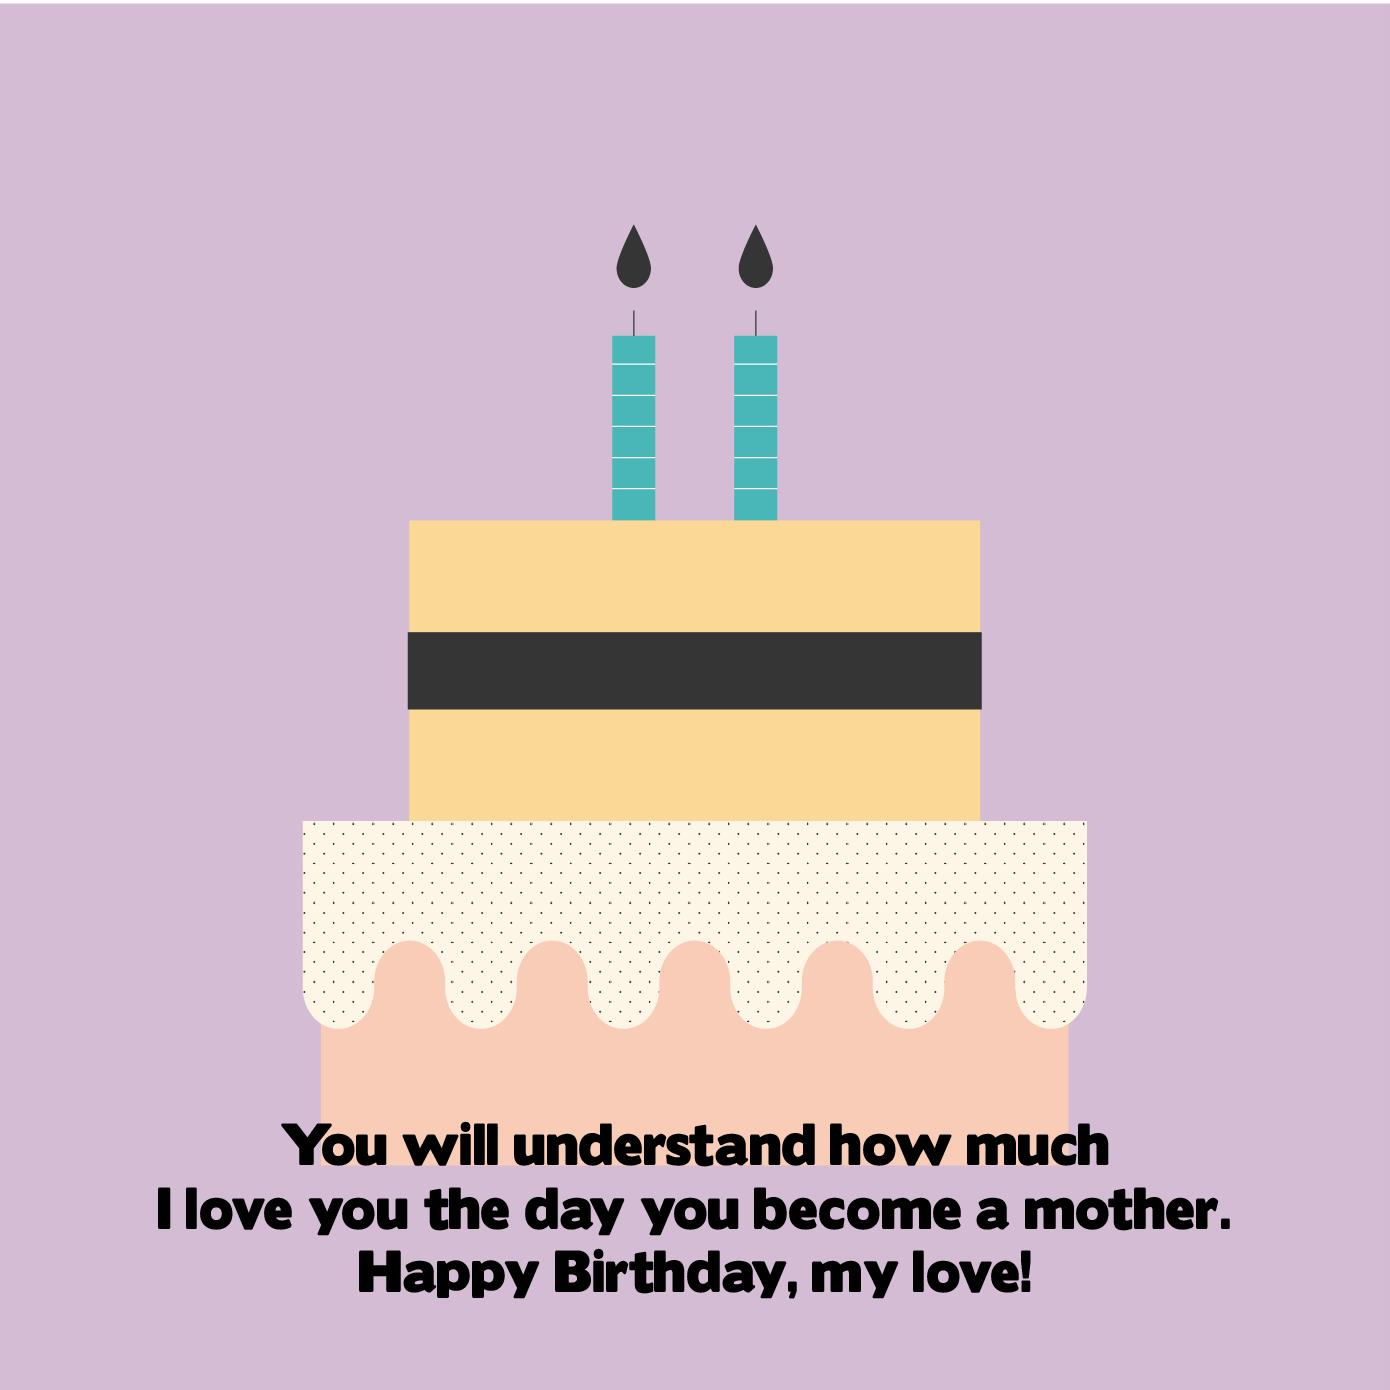 birthday-wishes-for-daughter-from-mom-06